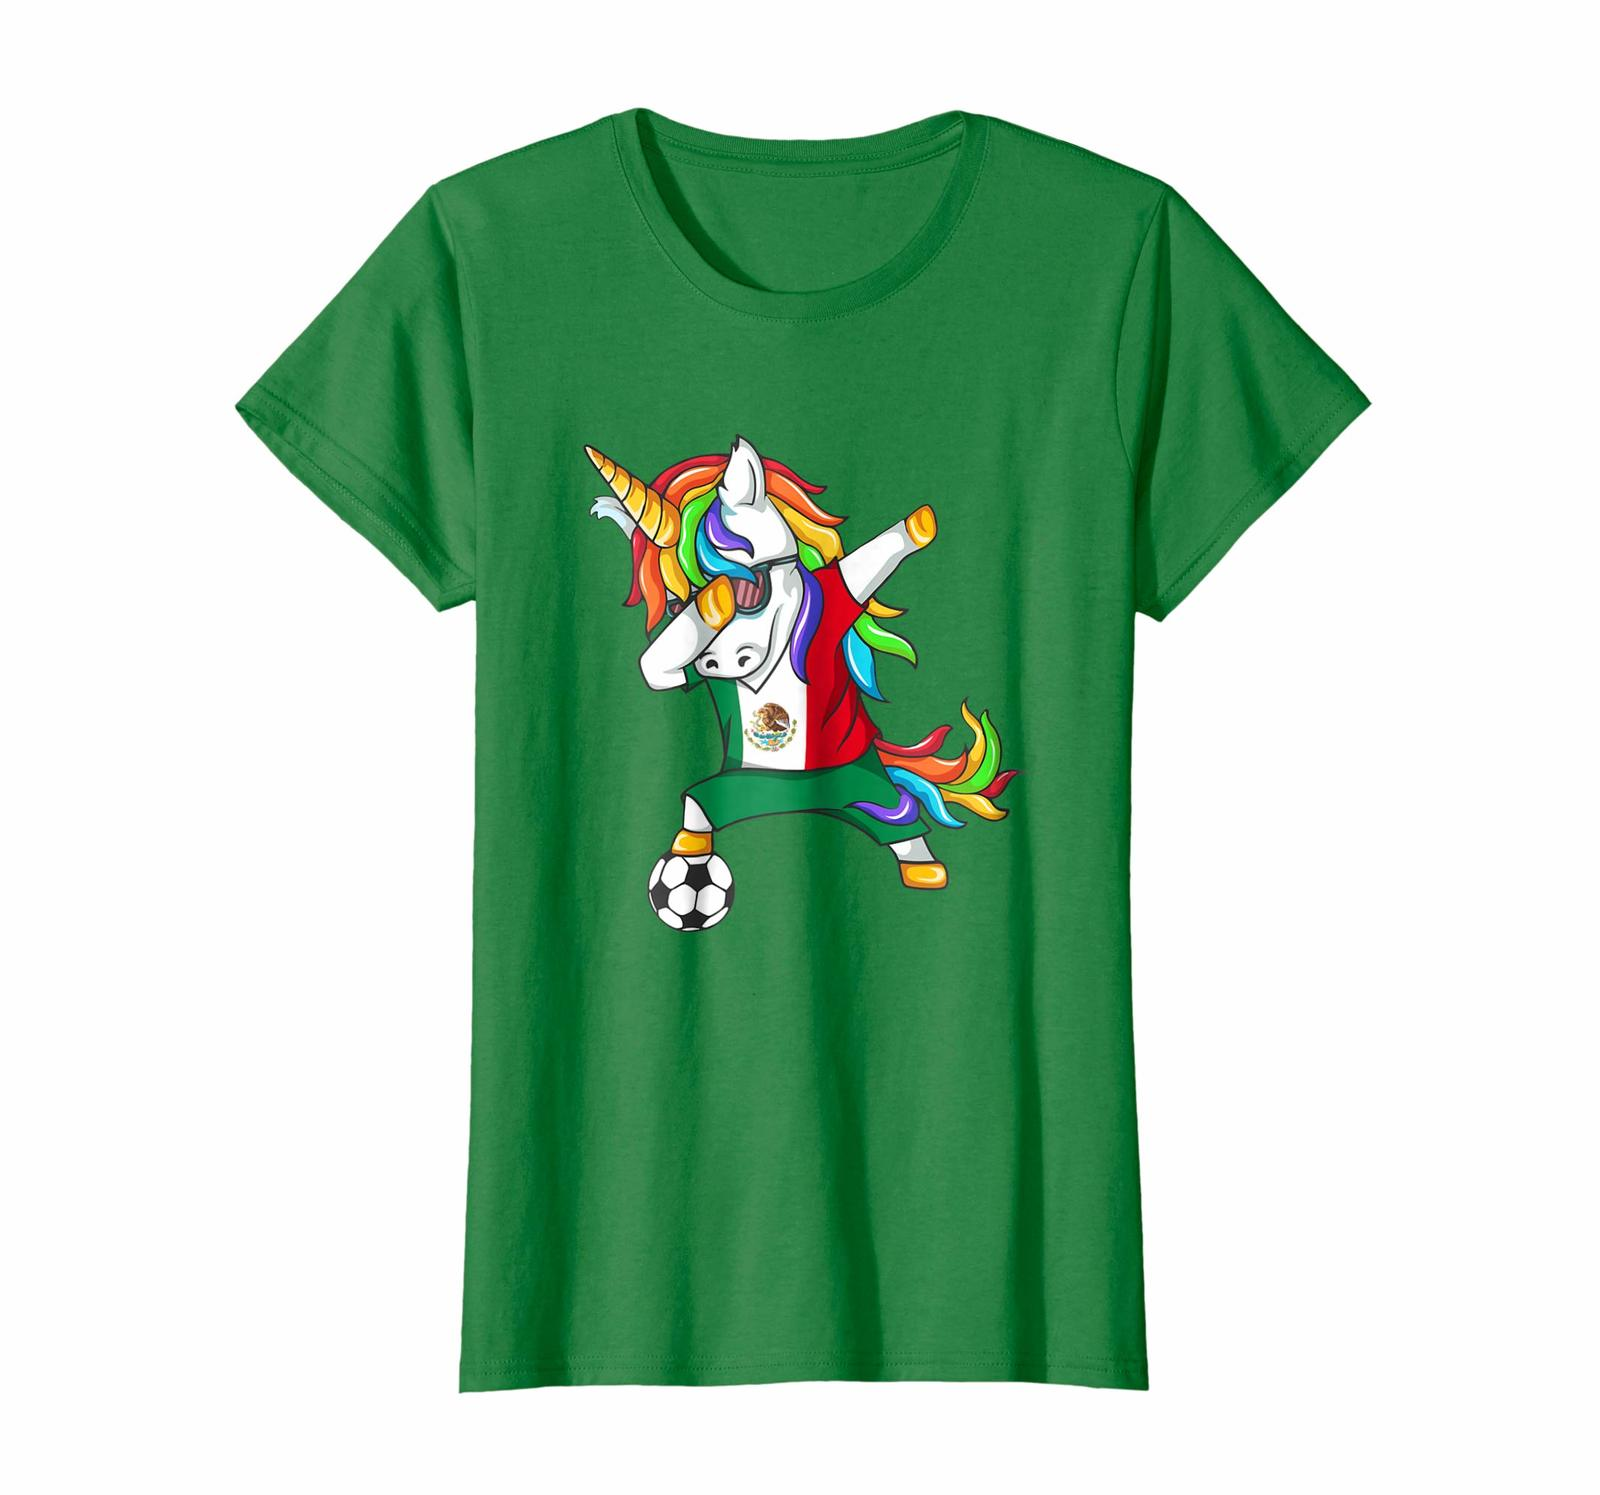 New Shirts - Dabbing Soccer 2018 Unicorn Mexico T-Shirt Wowen